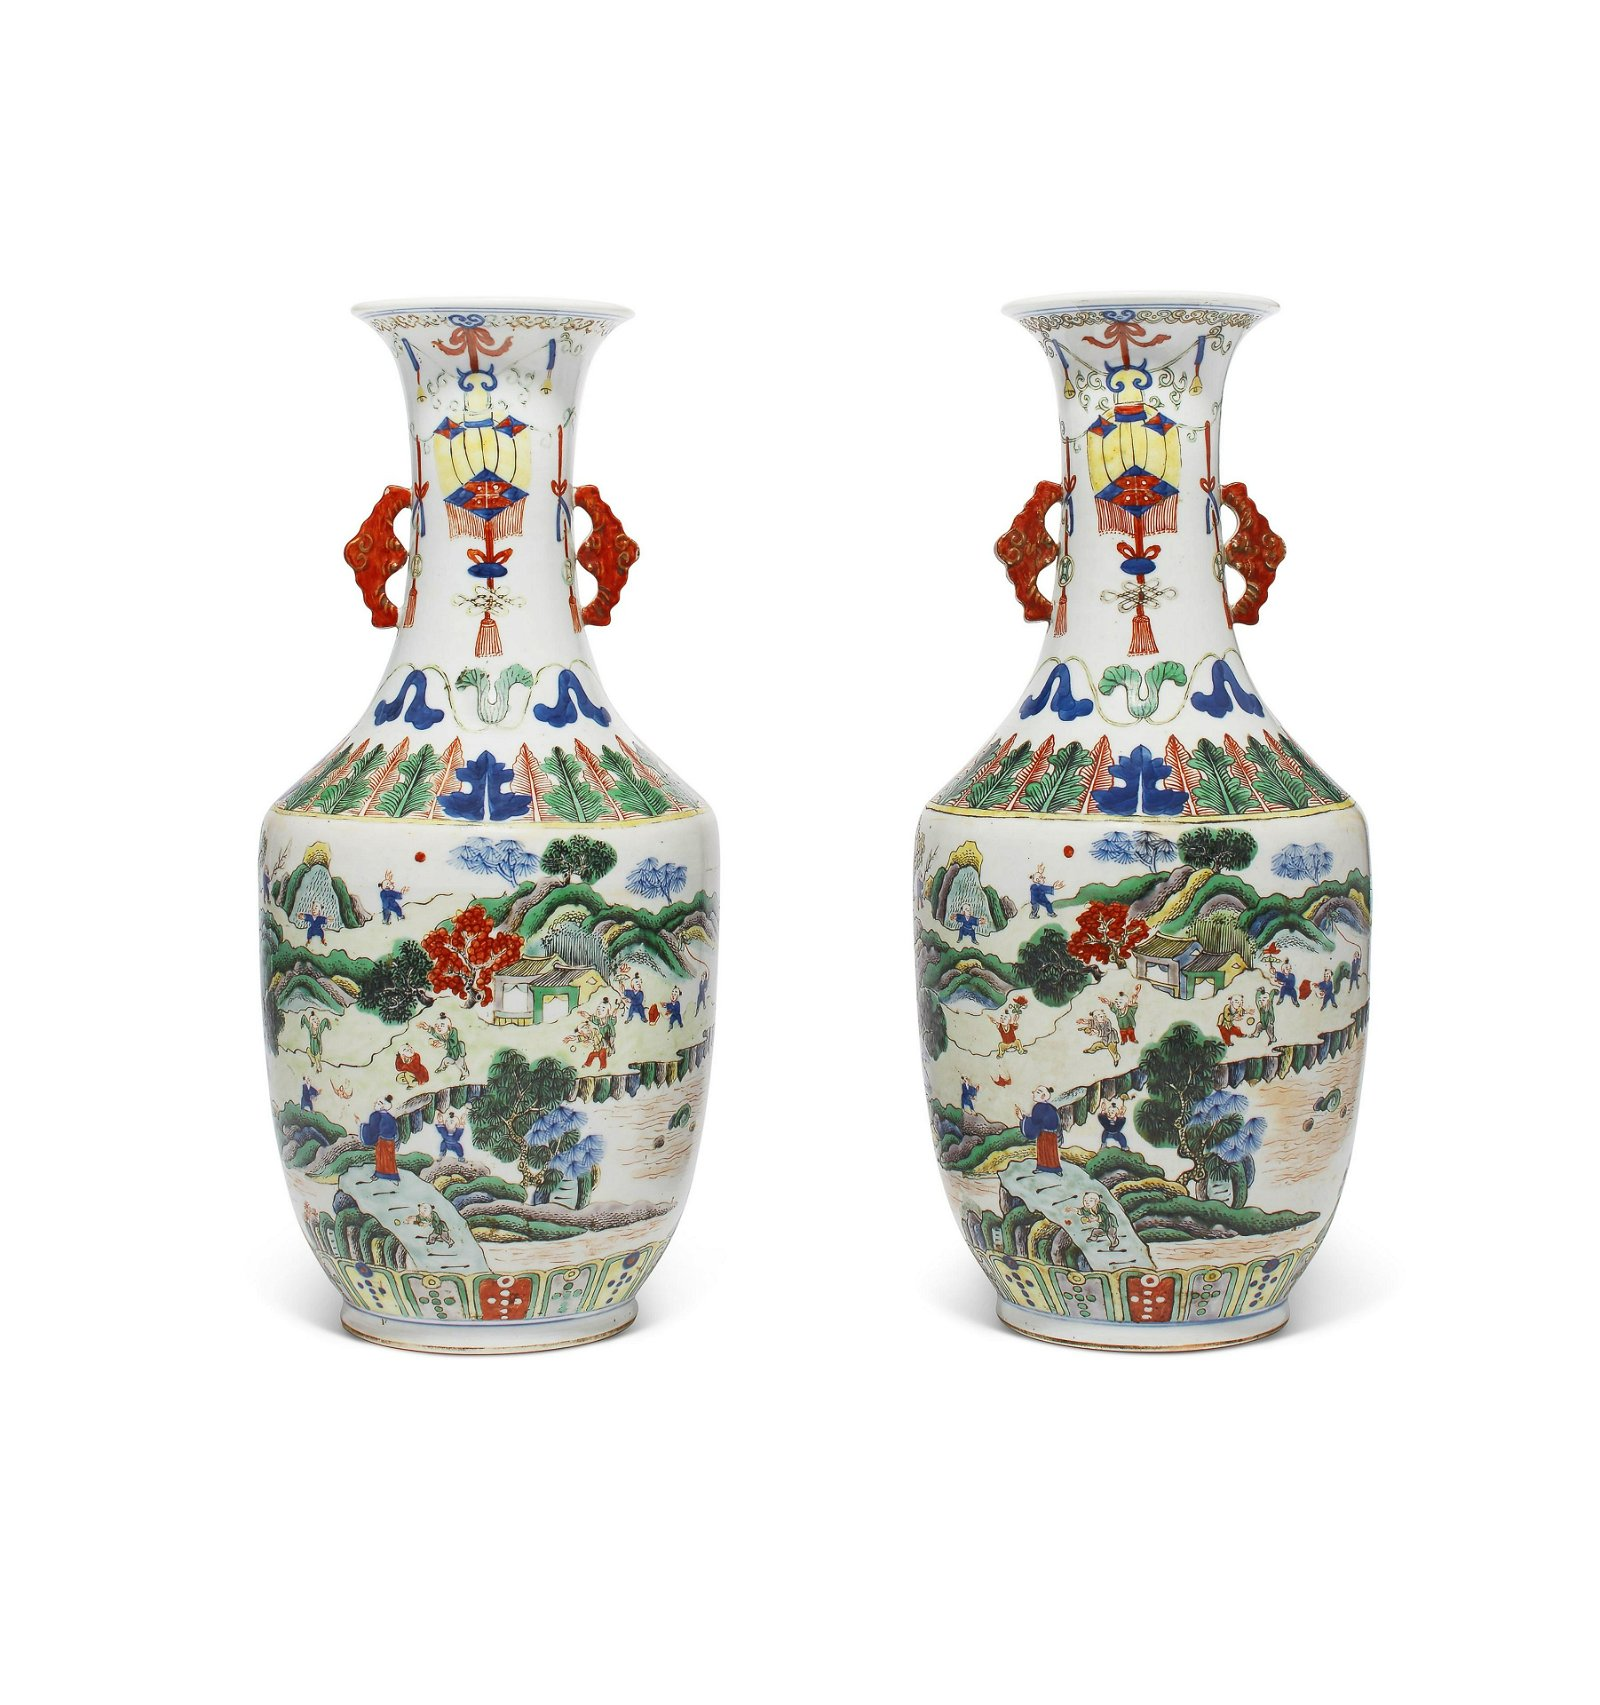 A PAIR OF WUCAI VASES